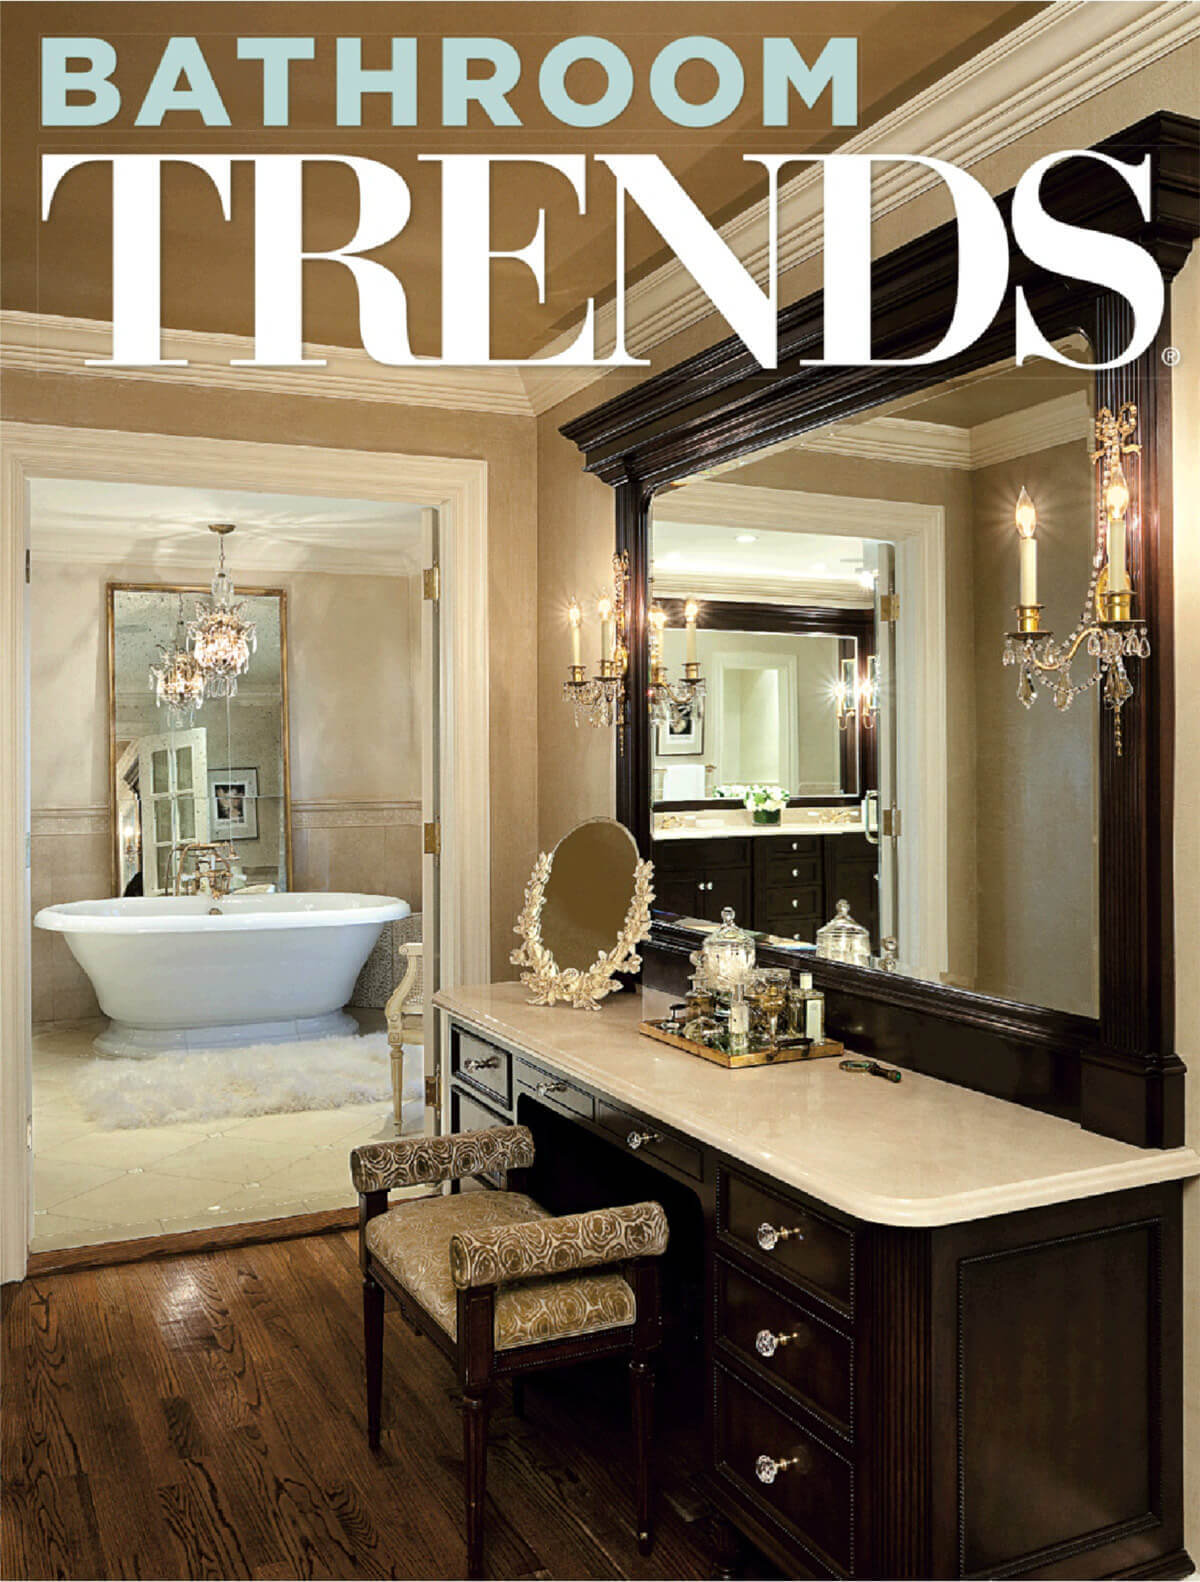 bathroom trends magazine design decoration. Black Bedroom Furniture Sets. Home Design Ideas